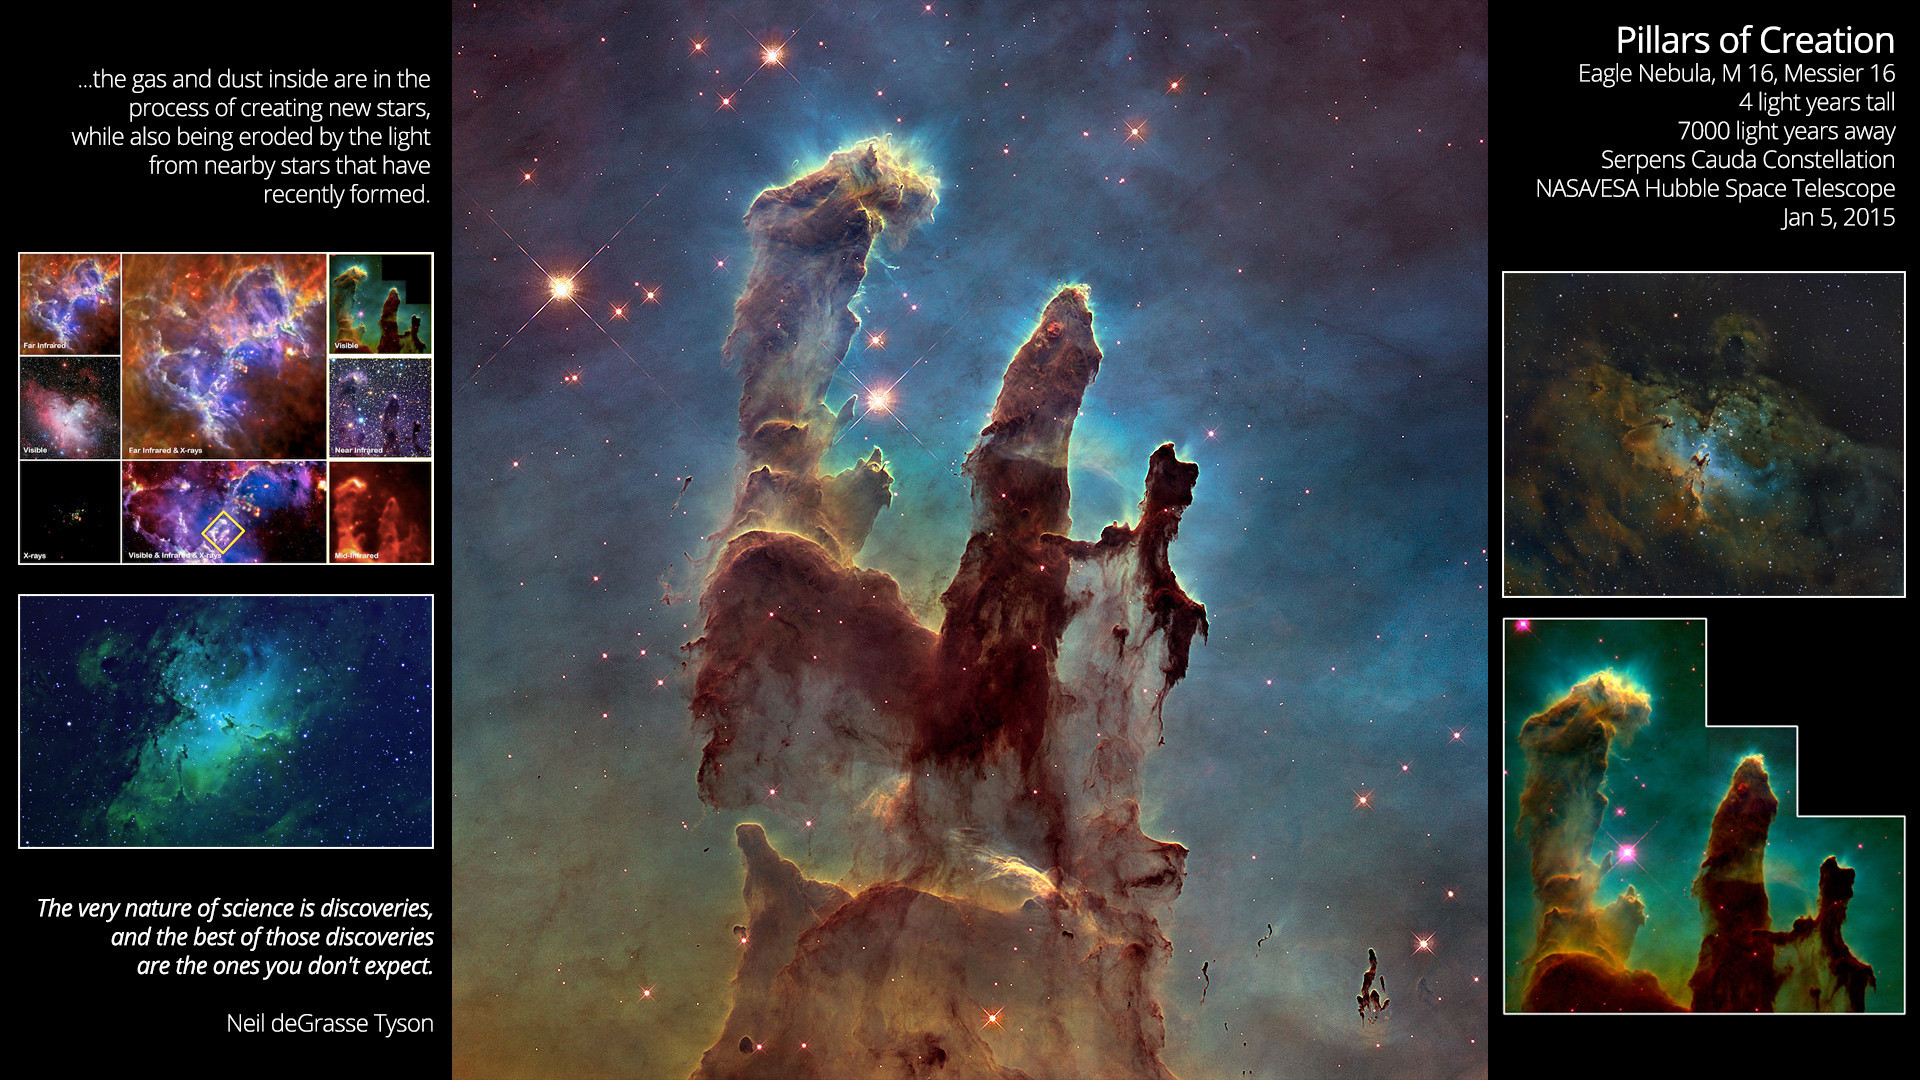 I made a wallpaper with the new photo of the Pillars of Creation (2014).